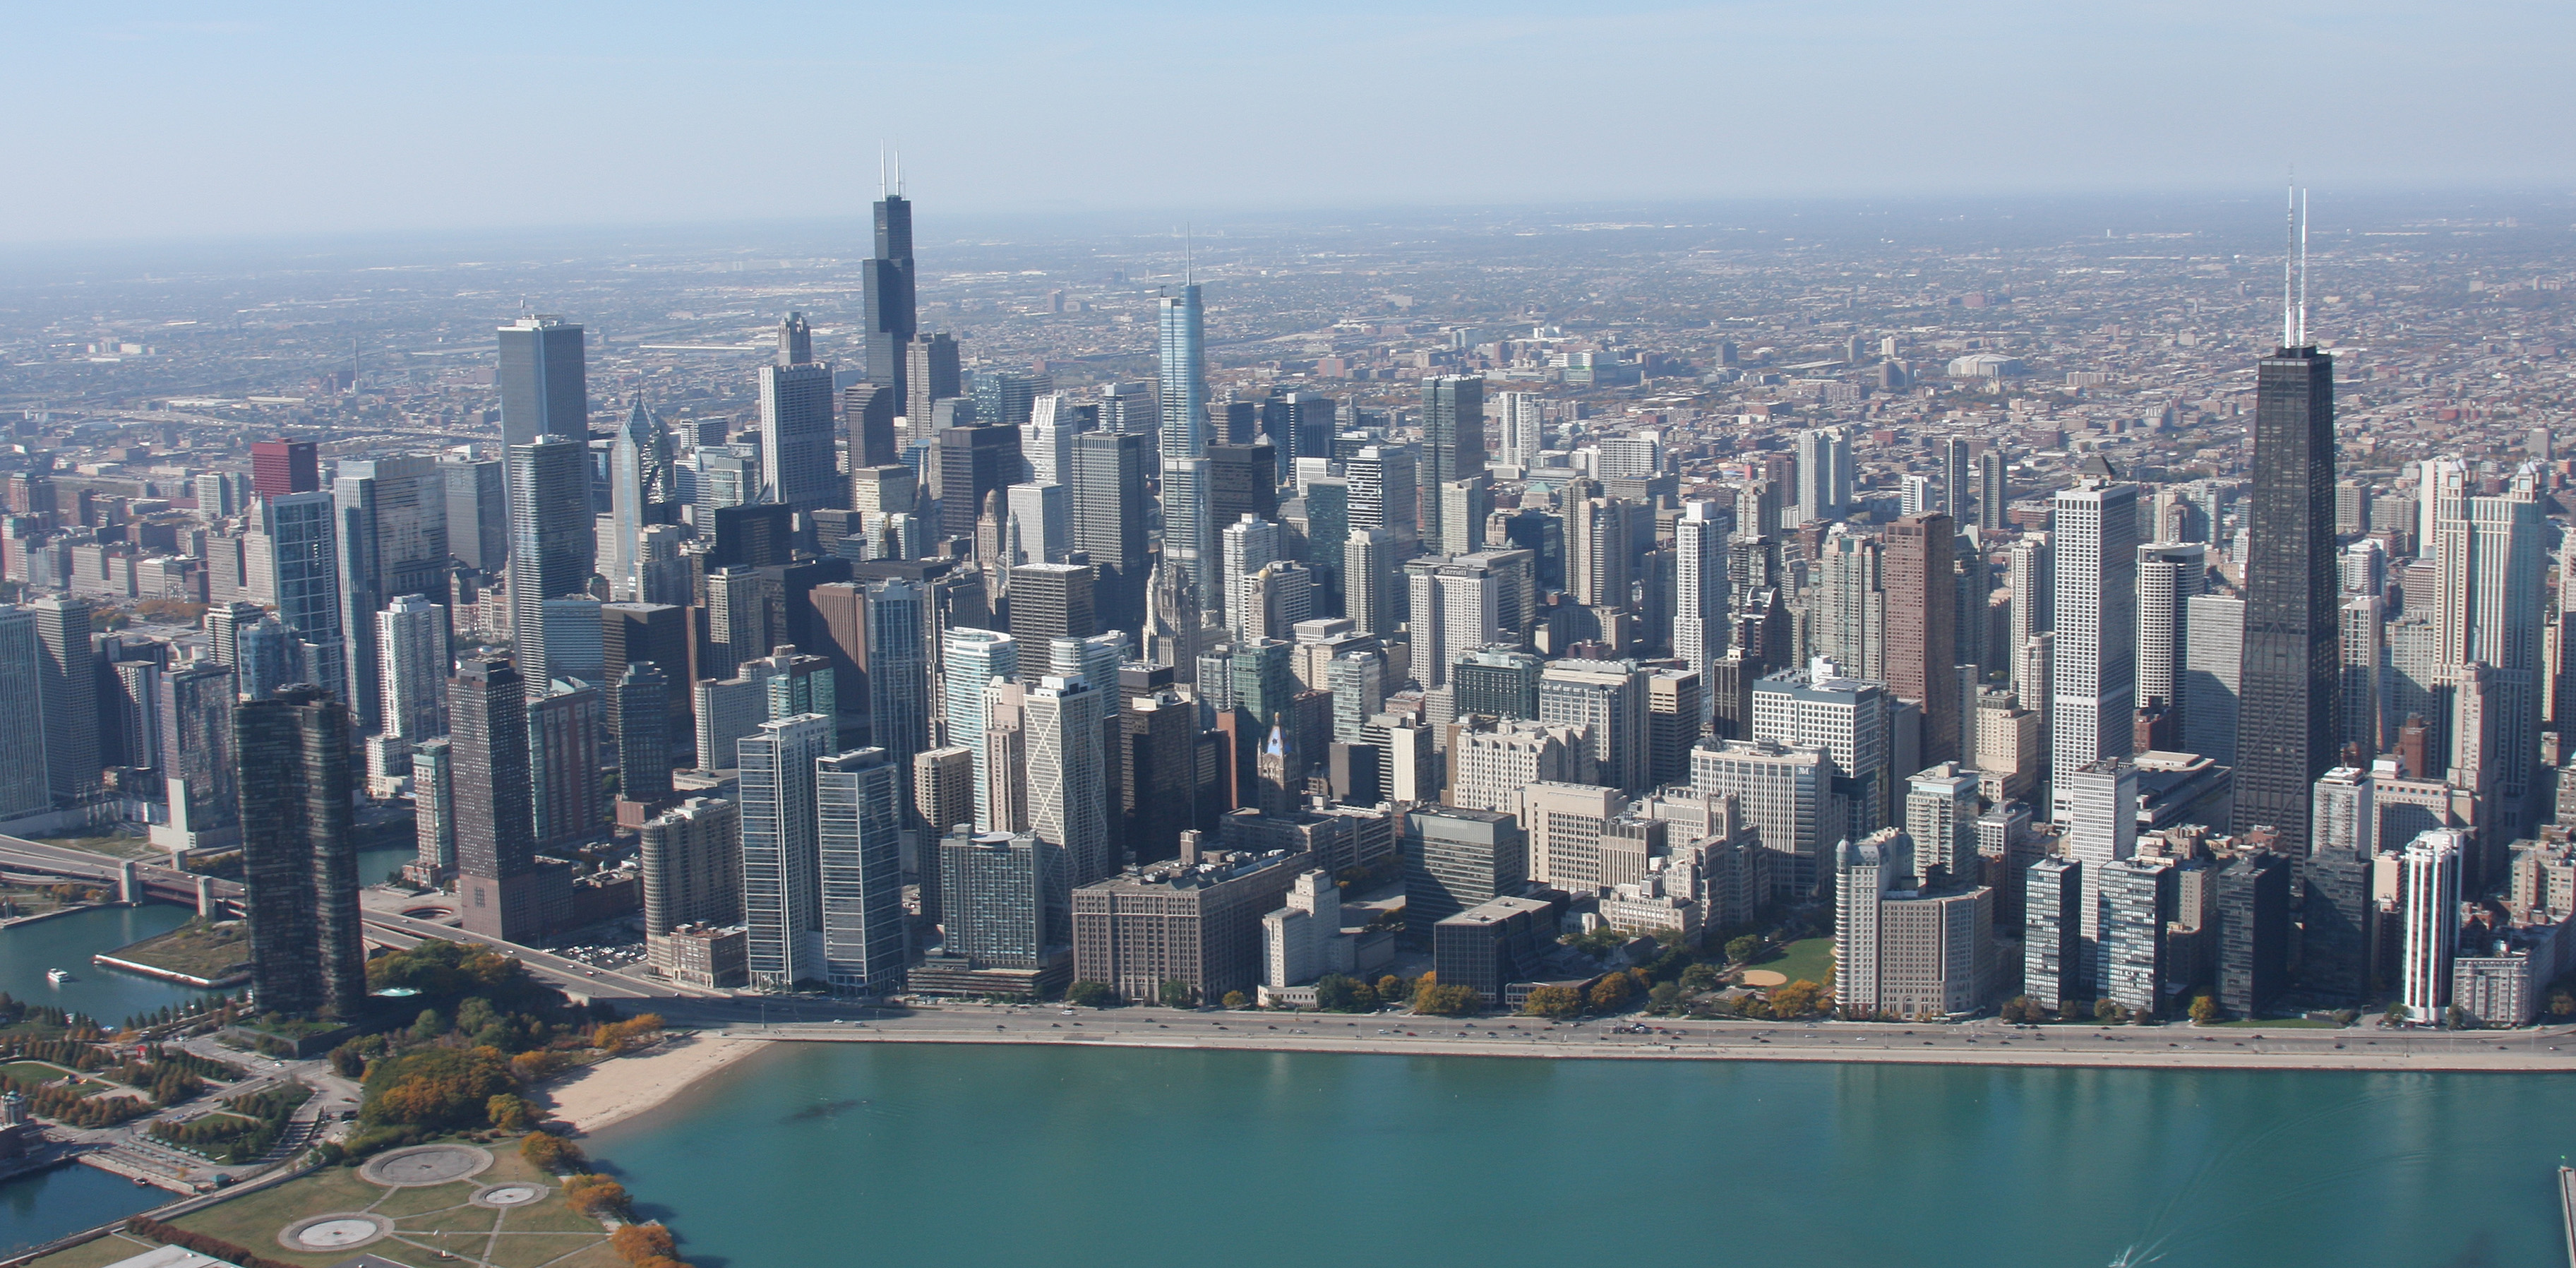 an analysis of the city of chicago in american cities In america's cities we conducted a content analysis of city and regional transportation planning documents from chicago newark ortland, or ortland, me.